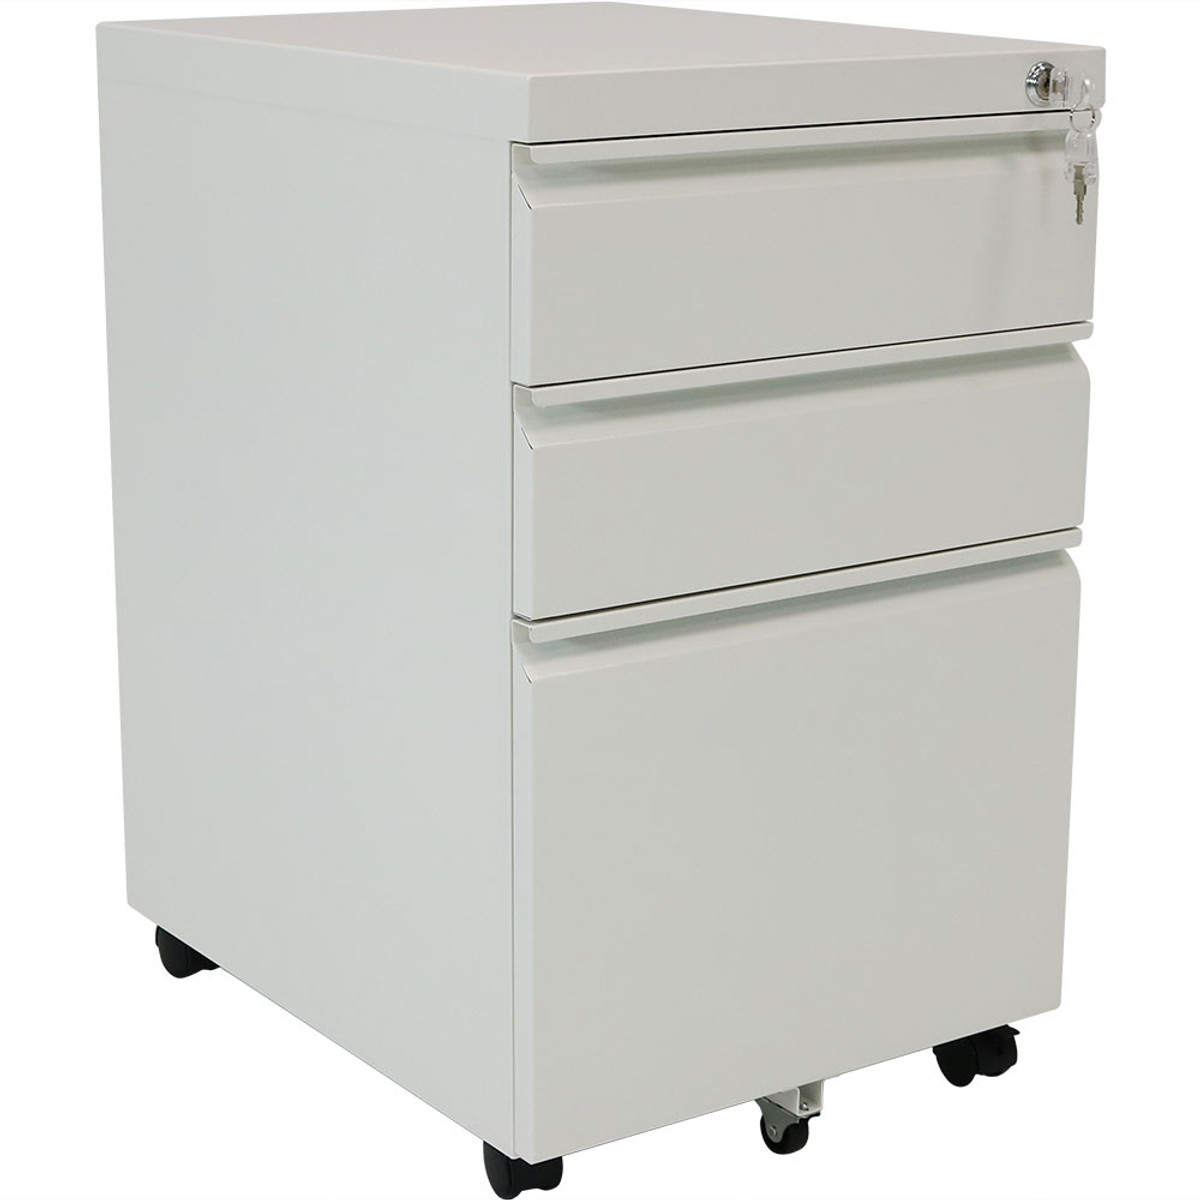 CASL Brands Rolling Steel 3 Drawer Wheeled Mobile File Cabinet With Lock  For Home Or Office